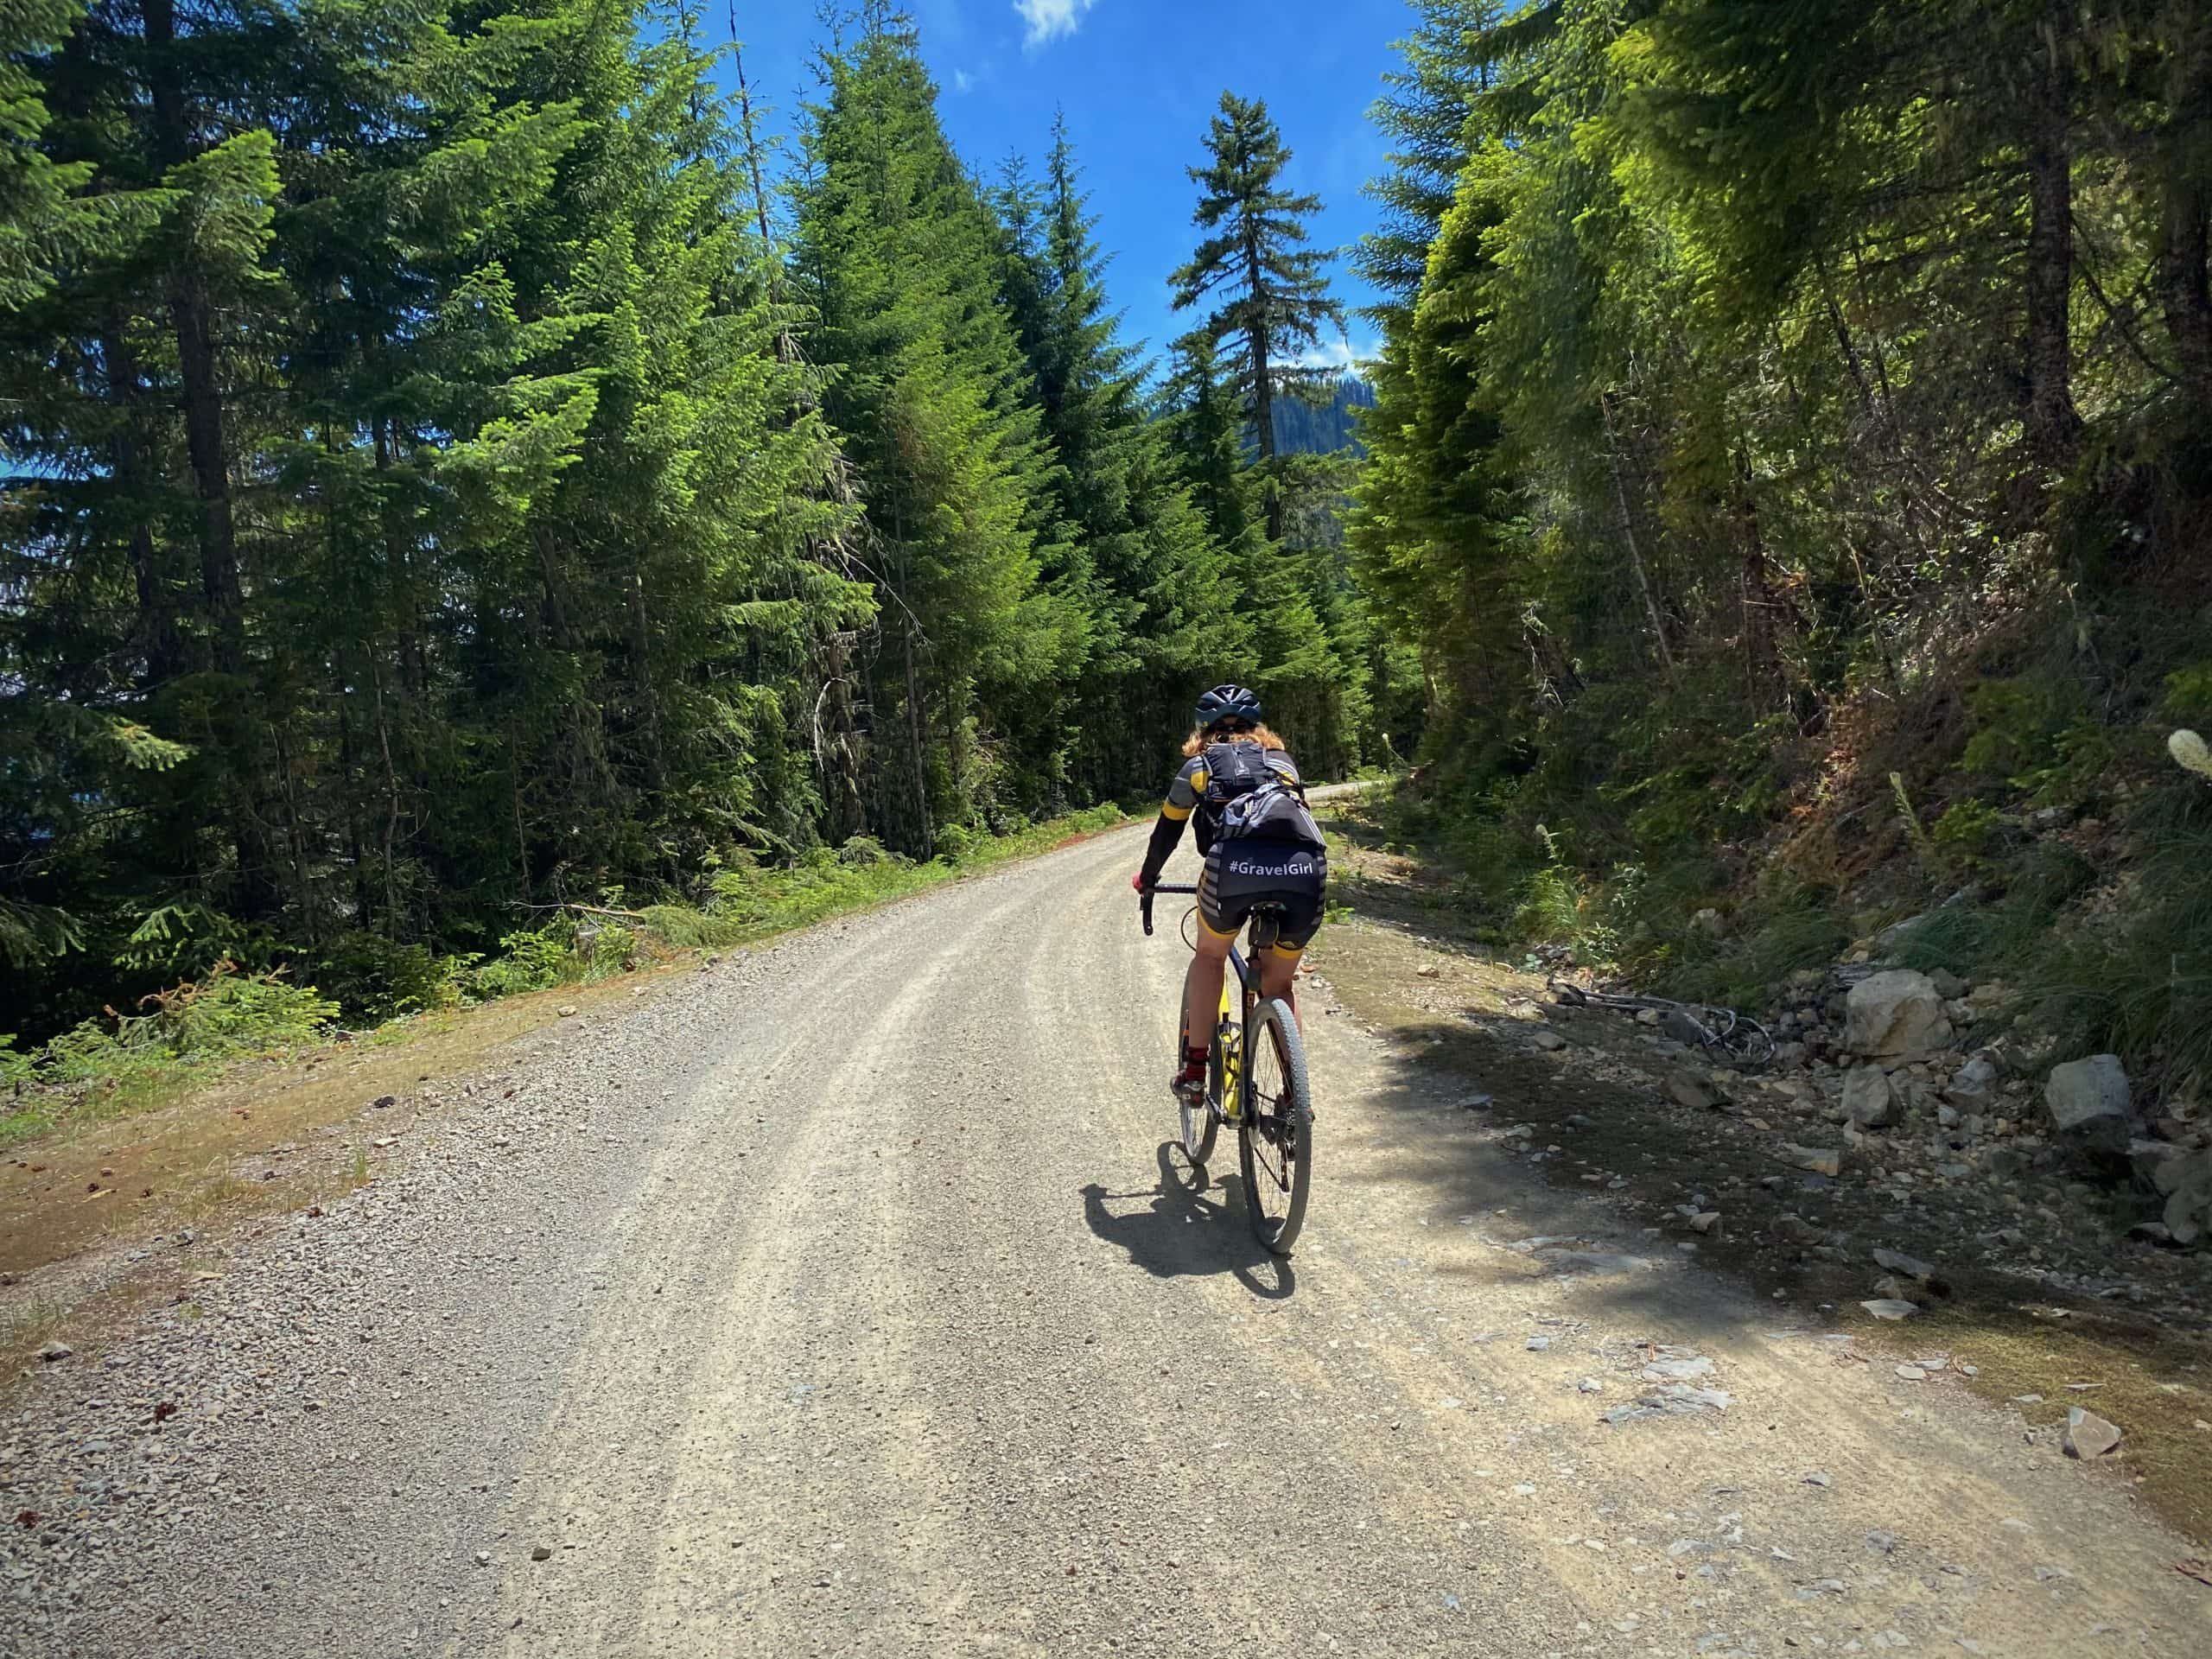 Gravel Girl on the big downhill of NF 1509 leading into Blue River, Oregon.